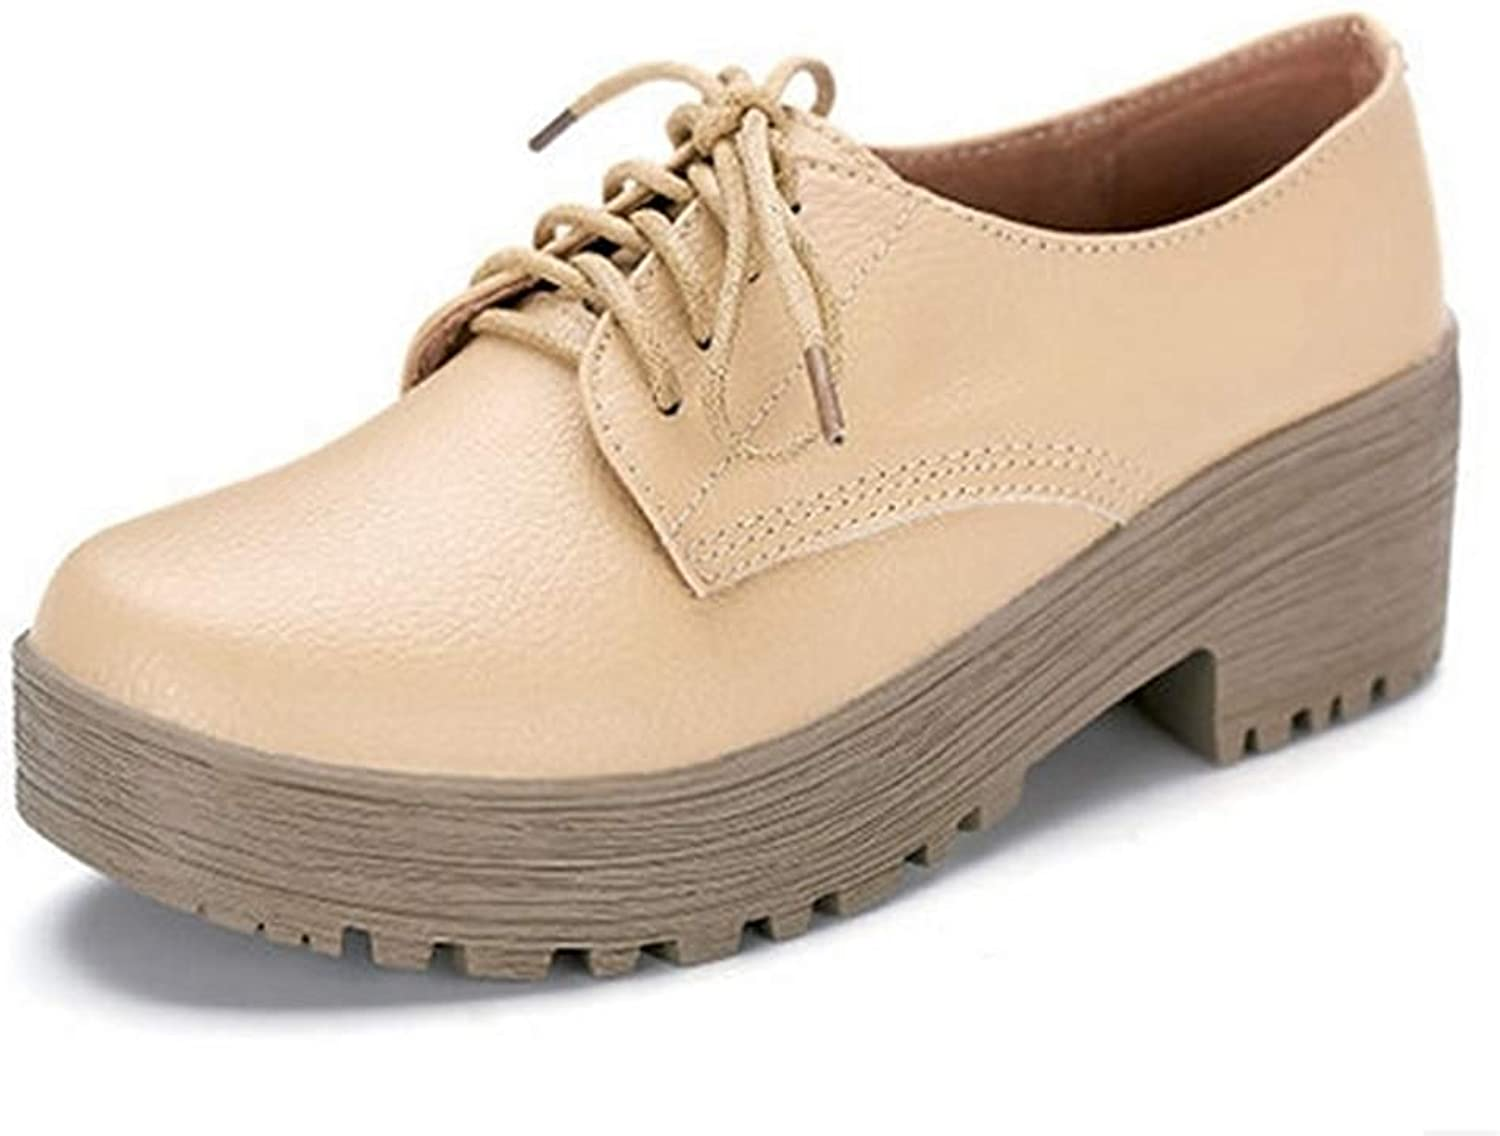 Bonrise Women's Fashion Lace-up Oxfords shoes Leather Perforated Wingtips Square-Toe Wedge Platform Oxford shoes